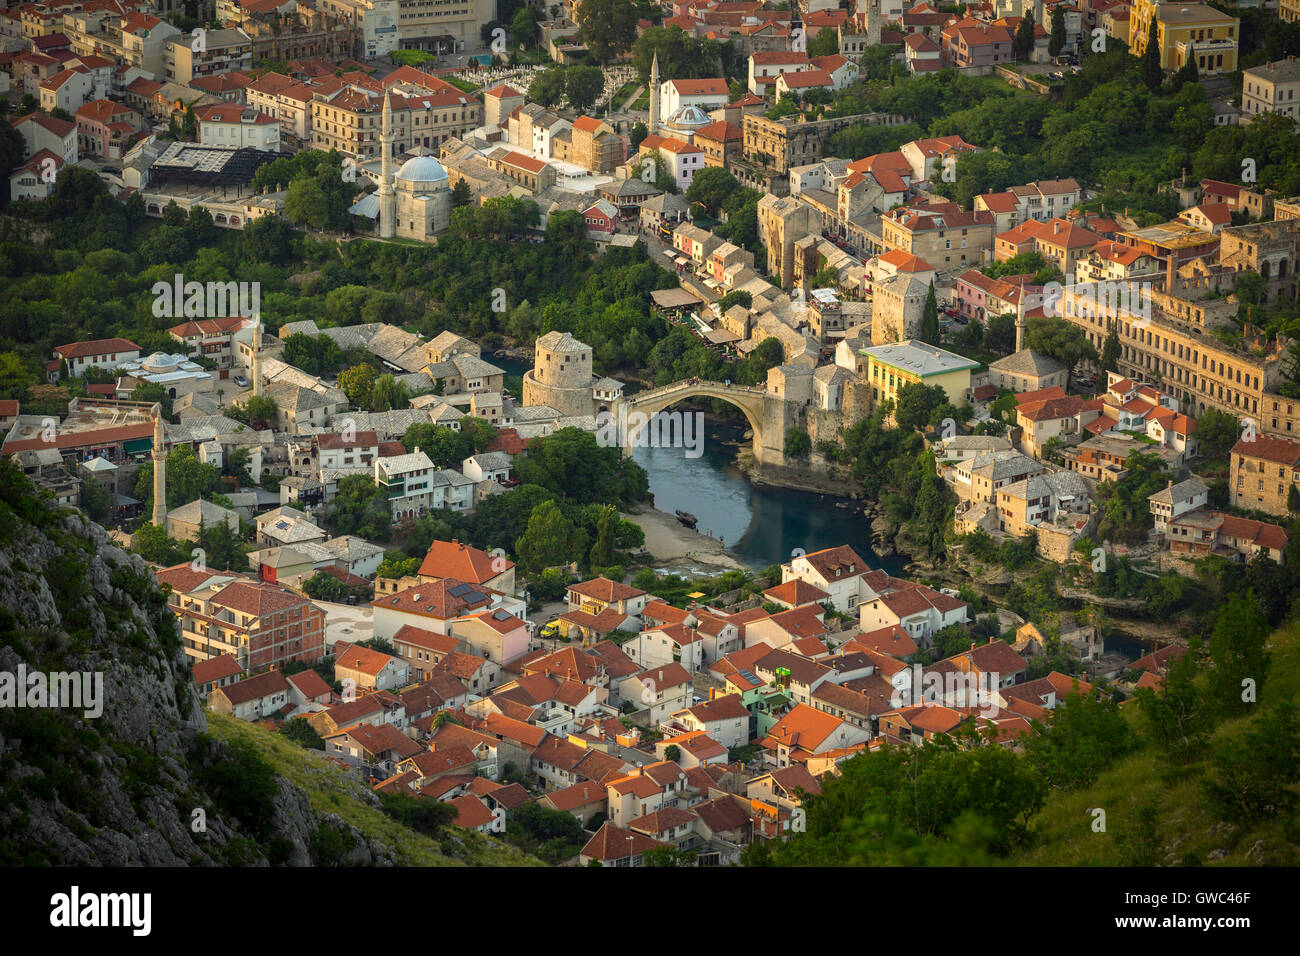 An aerial view of the Neretva river which runs across old Mostar and its Old Bridge (Stari Most). Bosnia Herzegovina Stock Photo